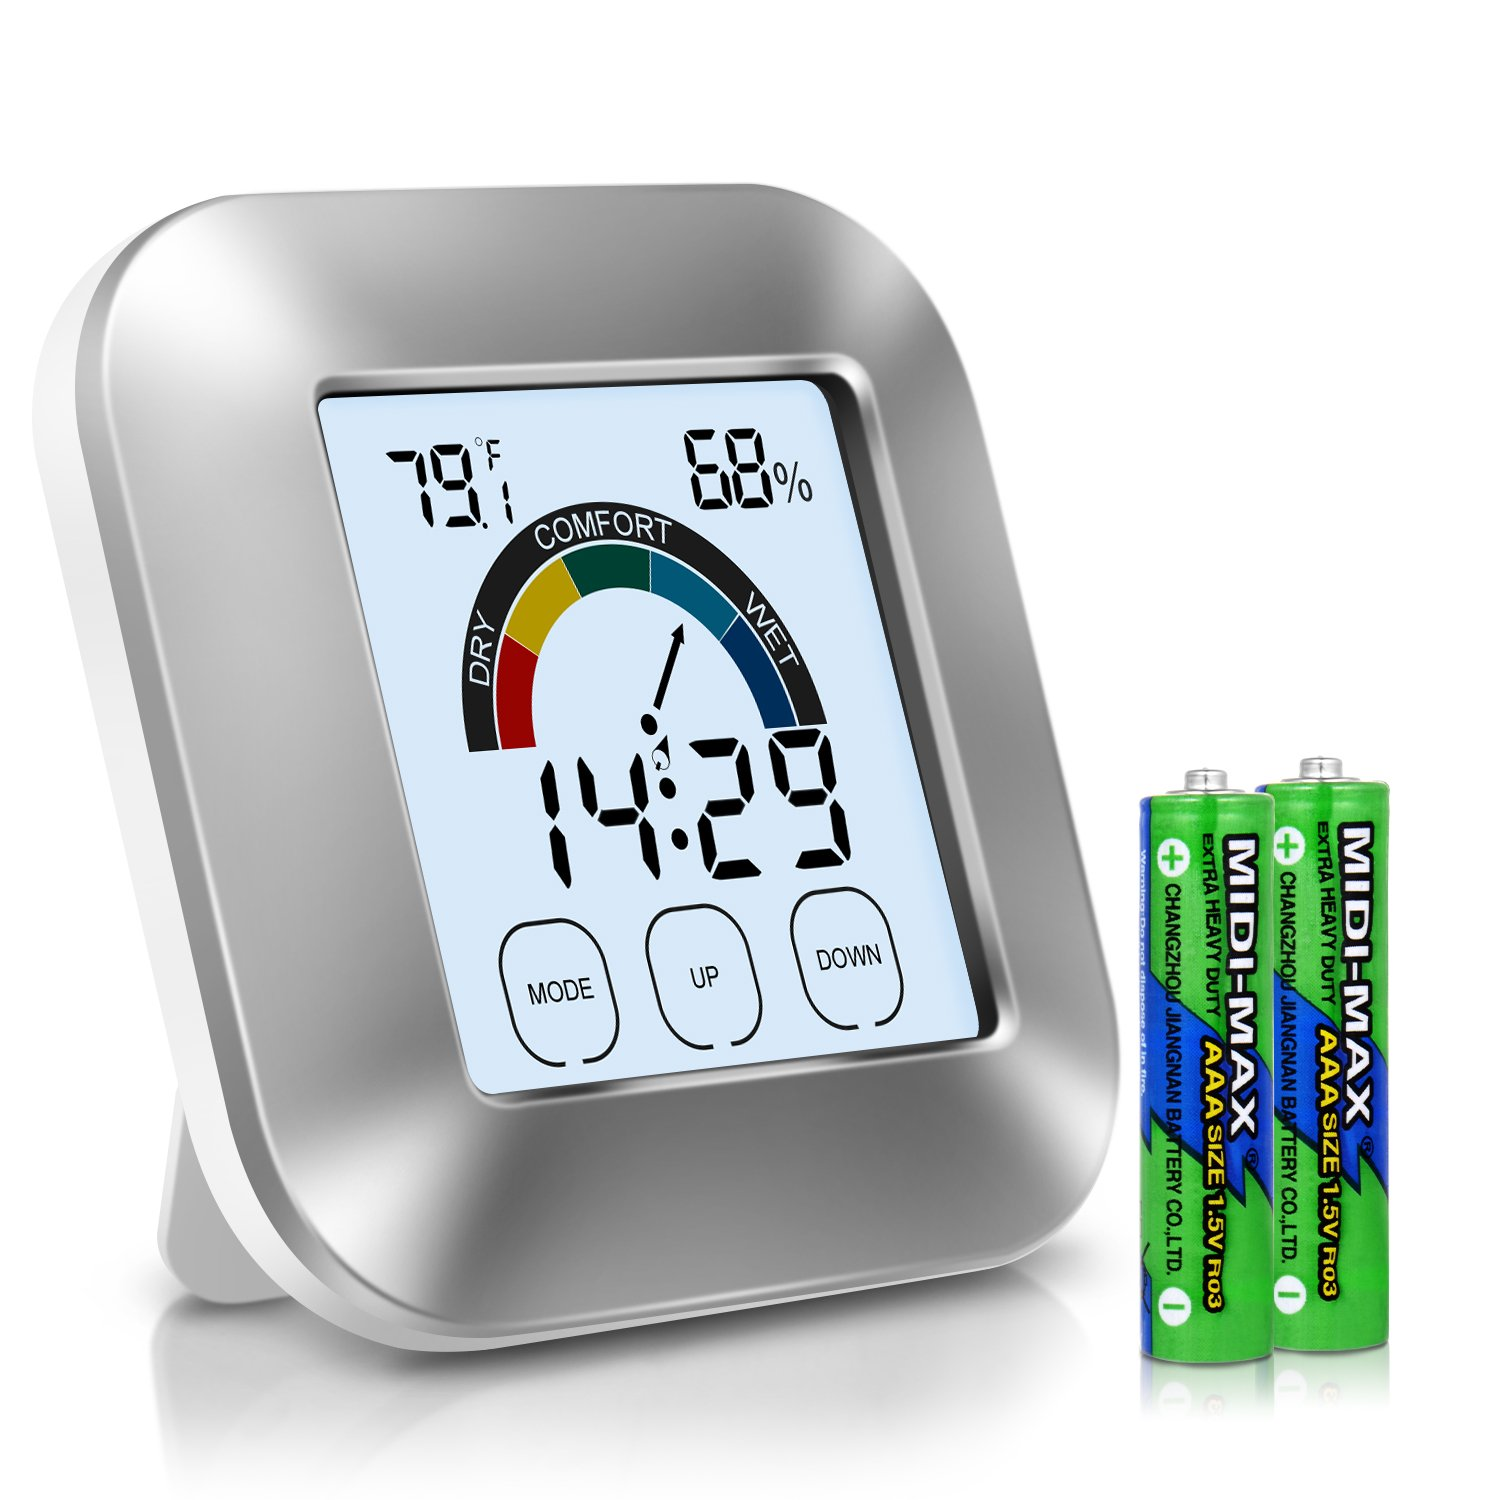 Adoric Life Hygrometer Thermometer, Indoor Thermometer Humidity Monitor with Touchscreen, Backlight, Time and Alarm (Battery Included)